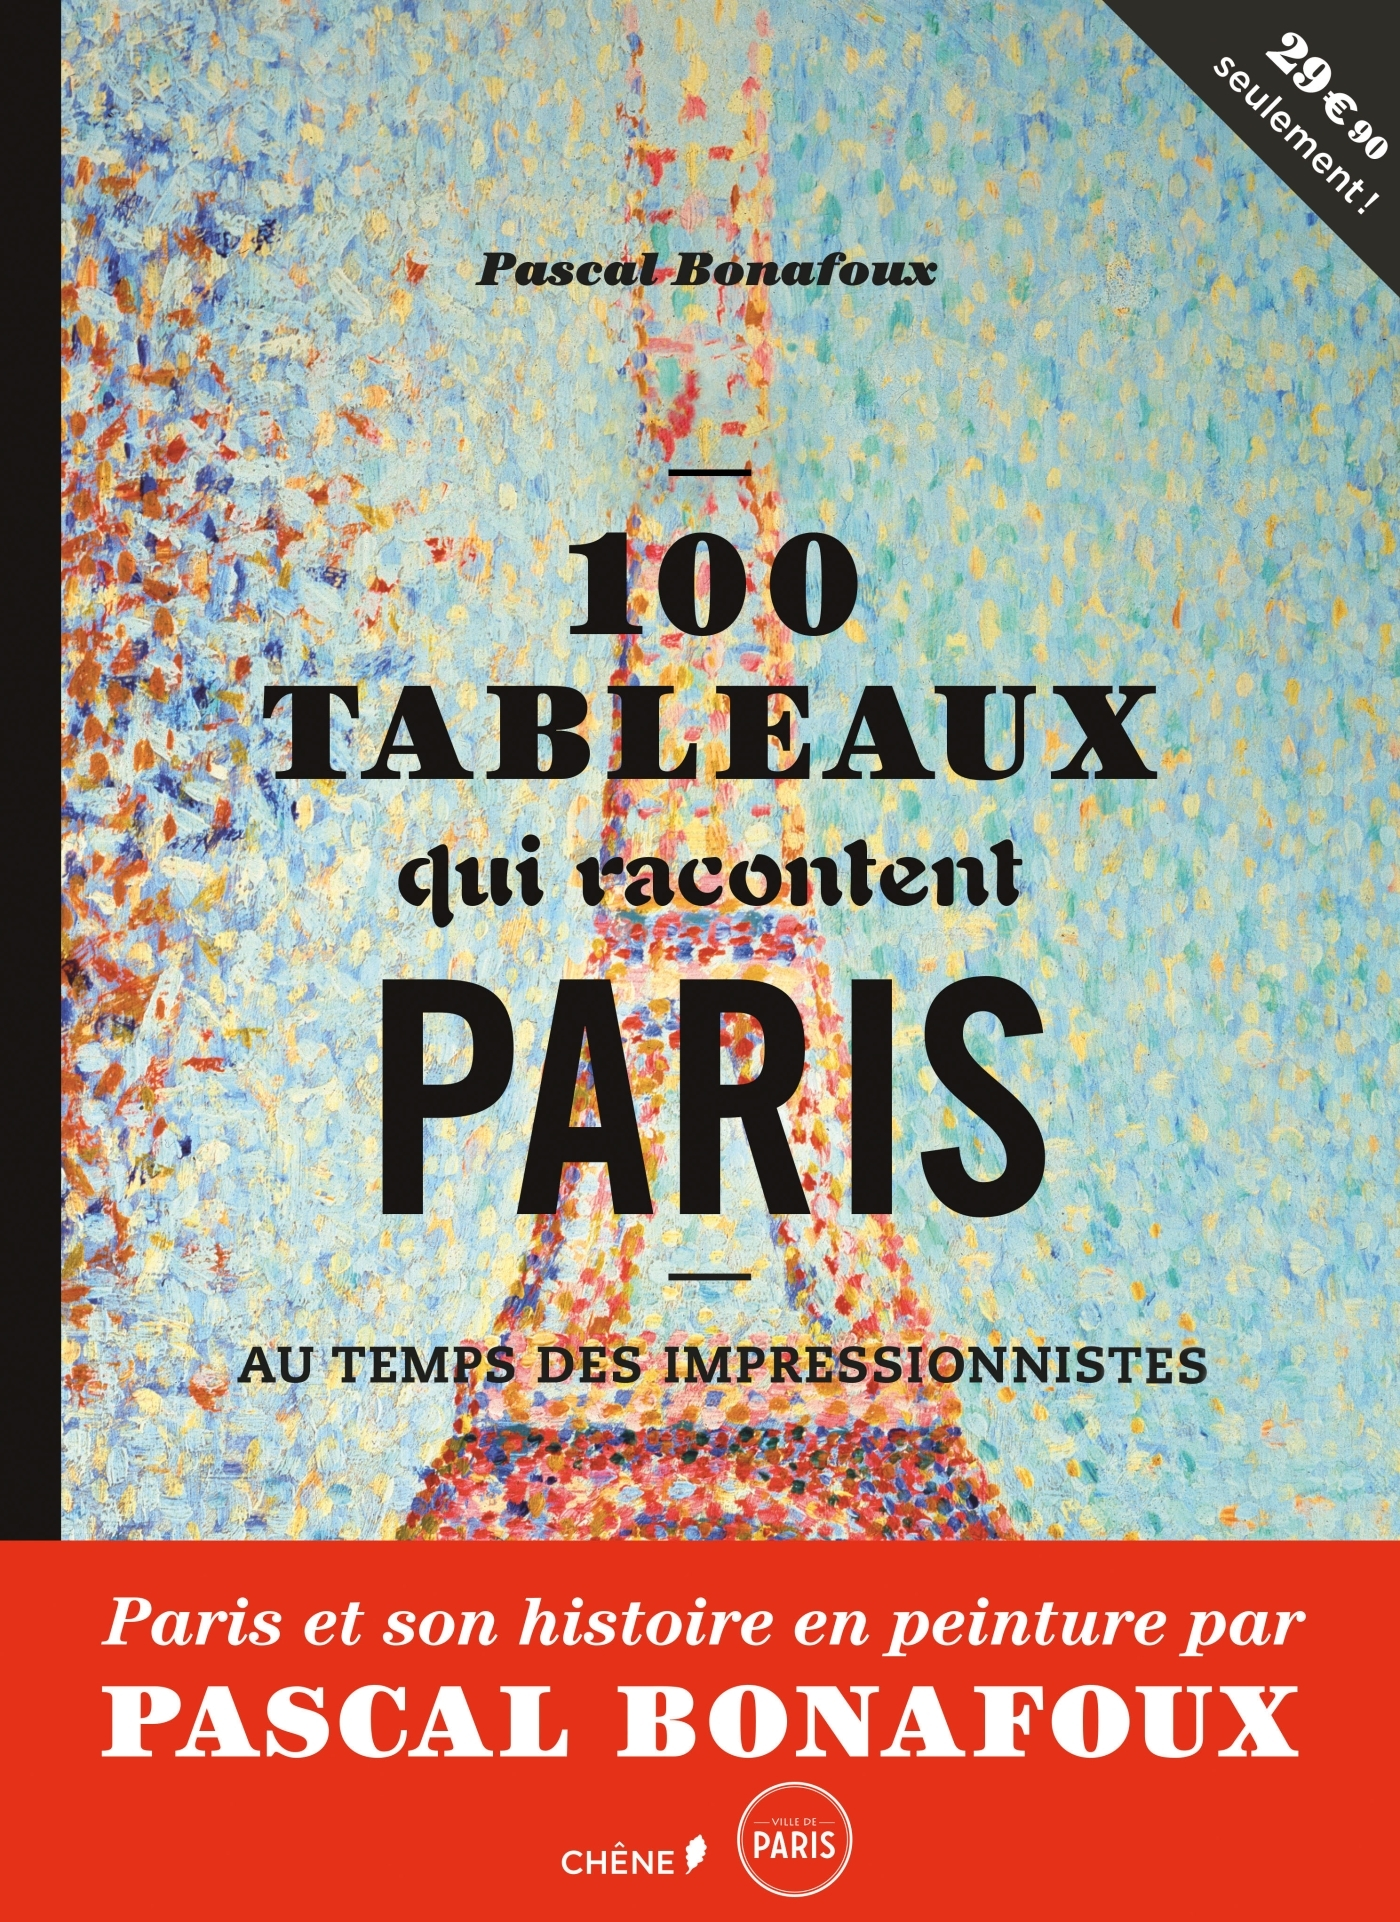 100 TABLEAUX QUI RACONTENT PARIS